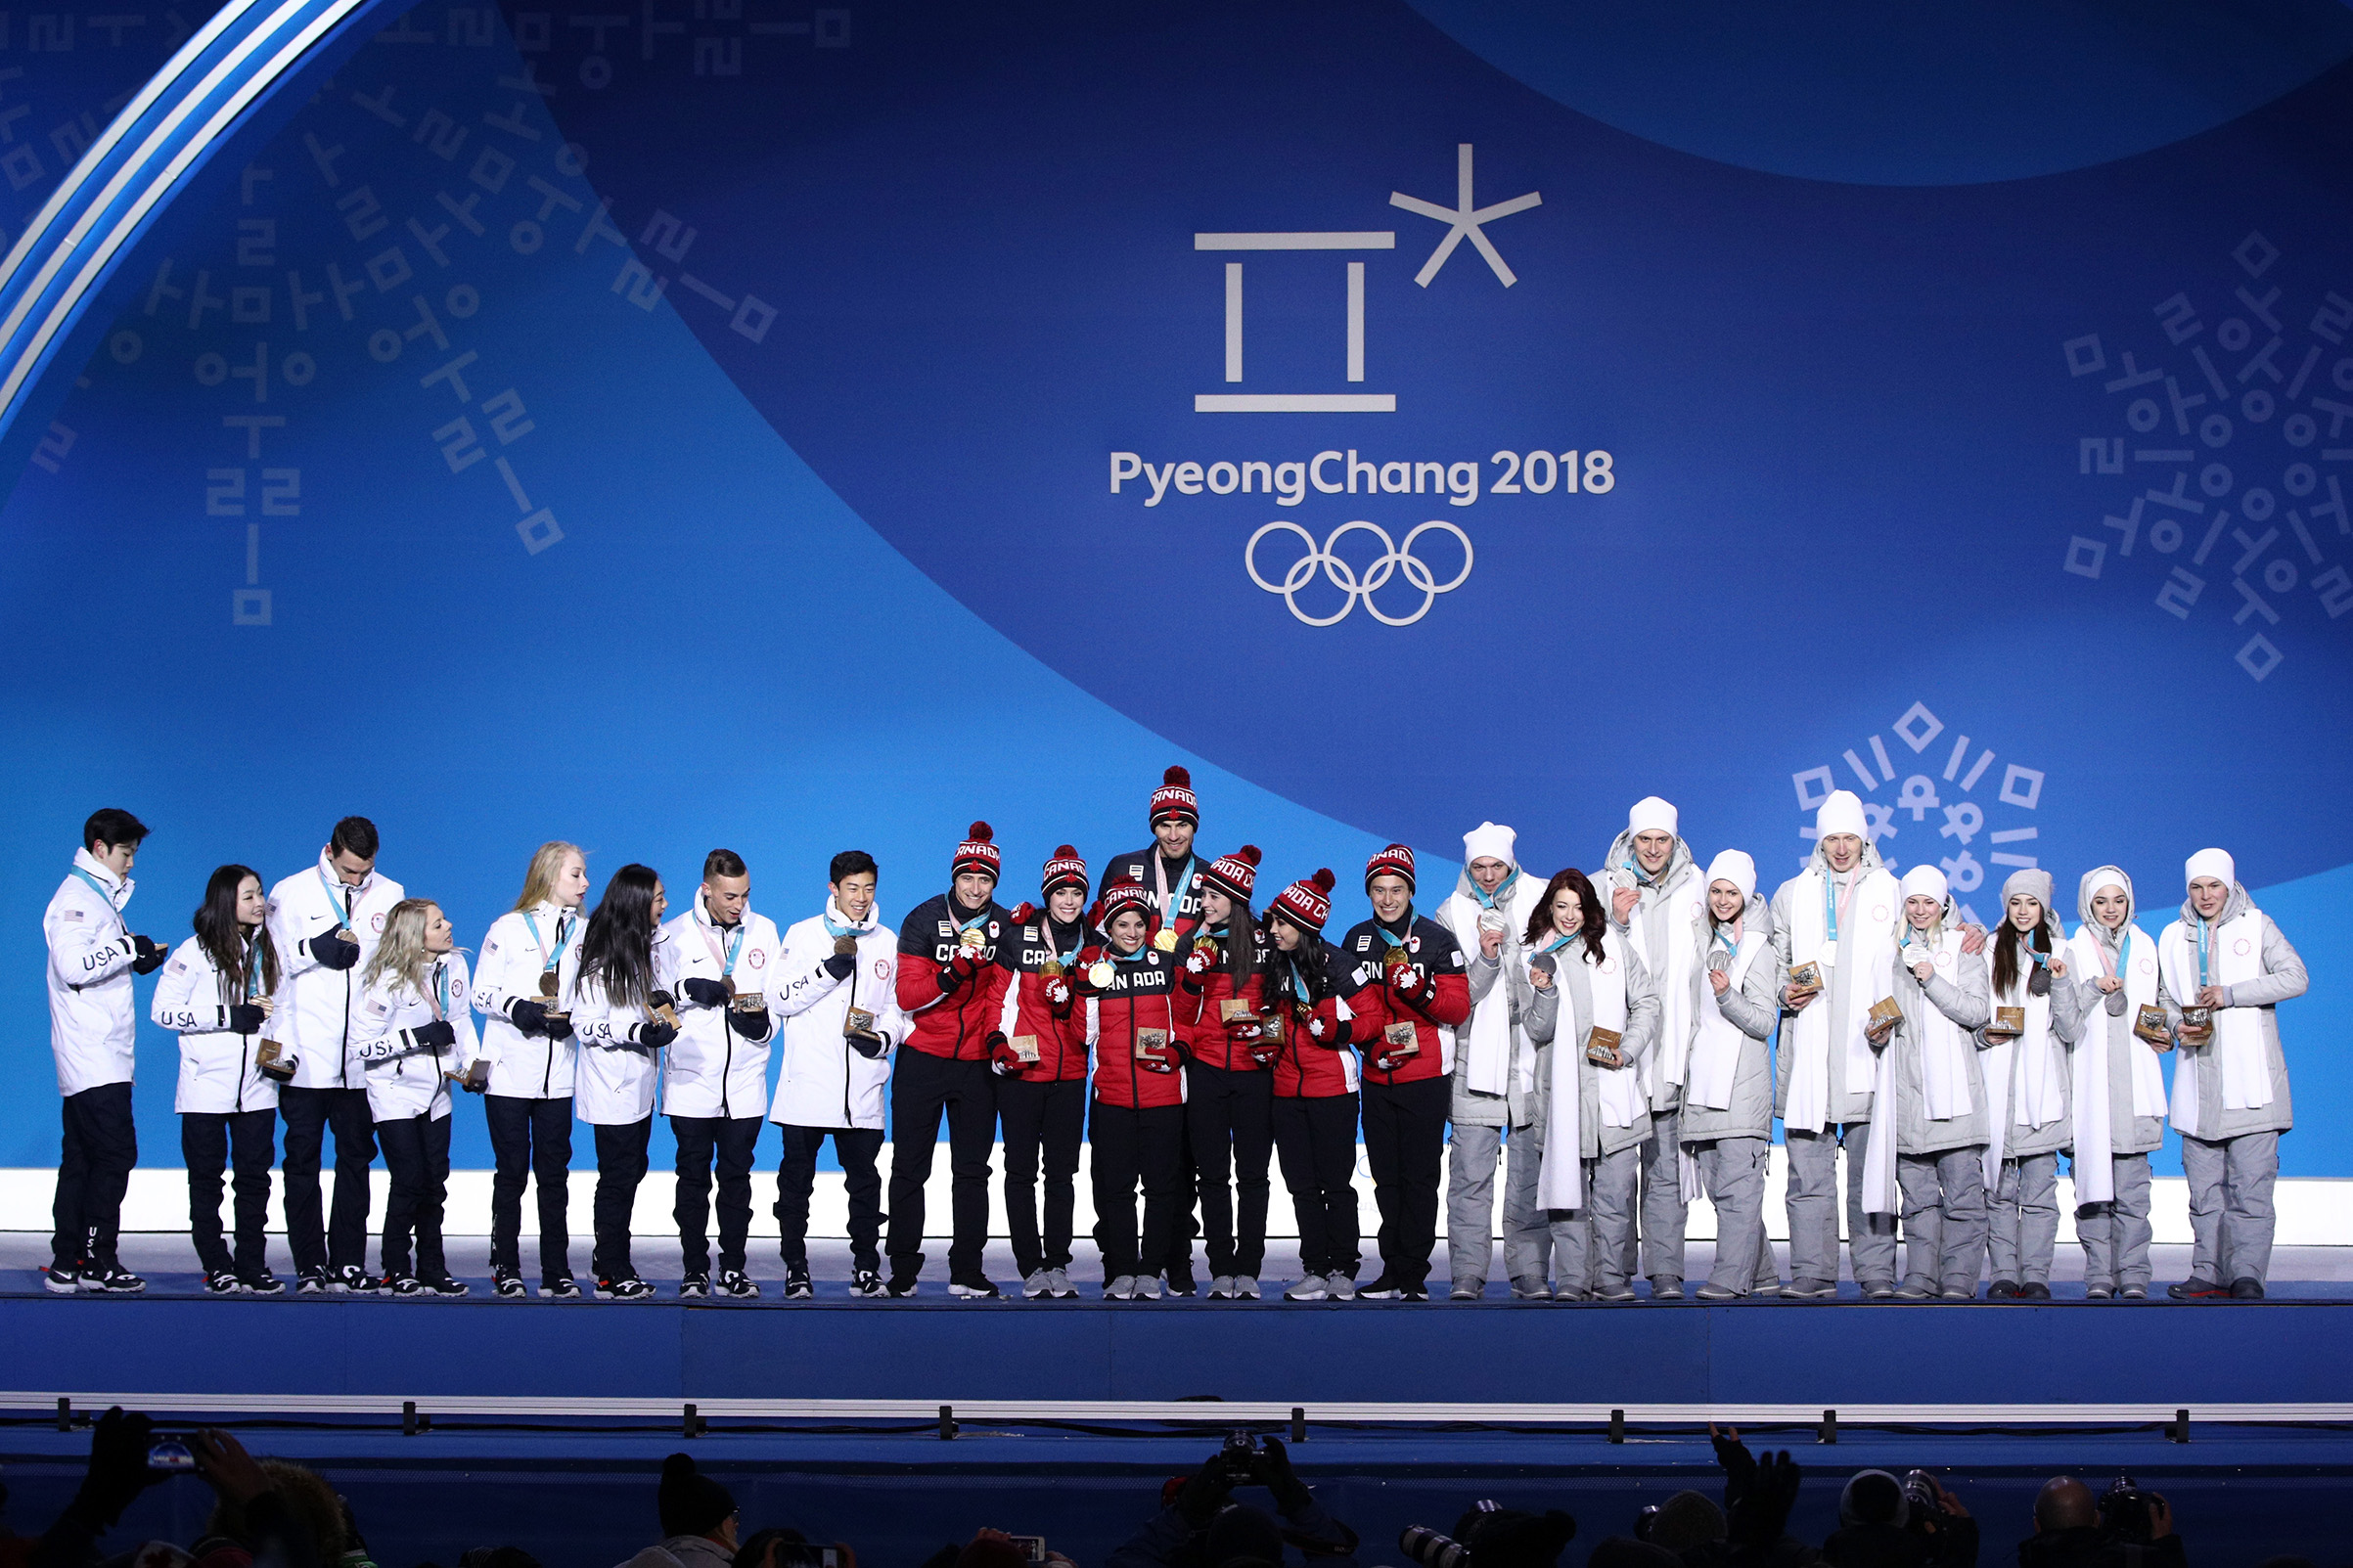 Silver medalists Team Olympic Athlete from Russia, gold medalists Team Canada and bronze medalists Team United States celebrate during the medal ceremony after the Figure Skating Team Event at Medal Plaza on Feb. 12, 2018 in Pyeongchang-gun, South Korea.